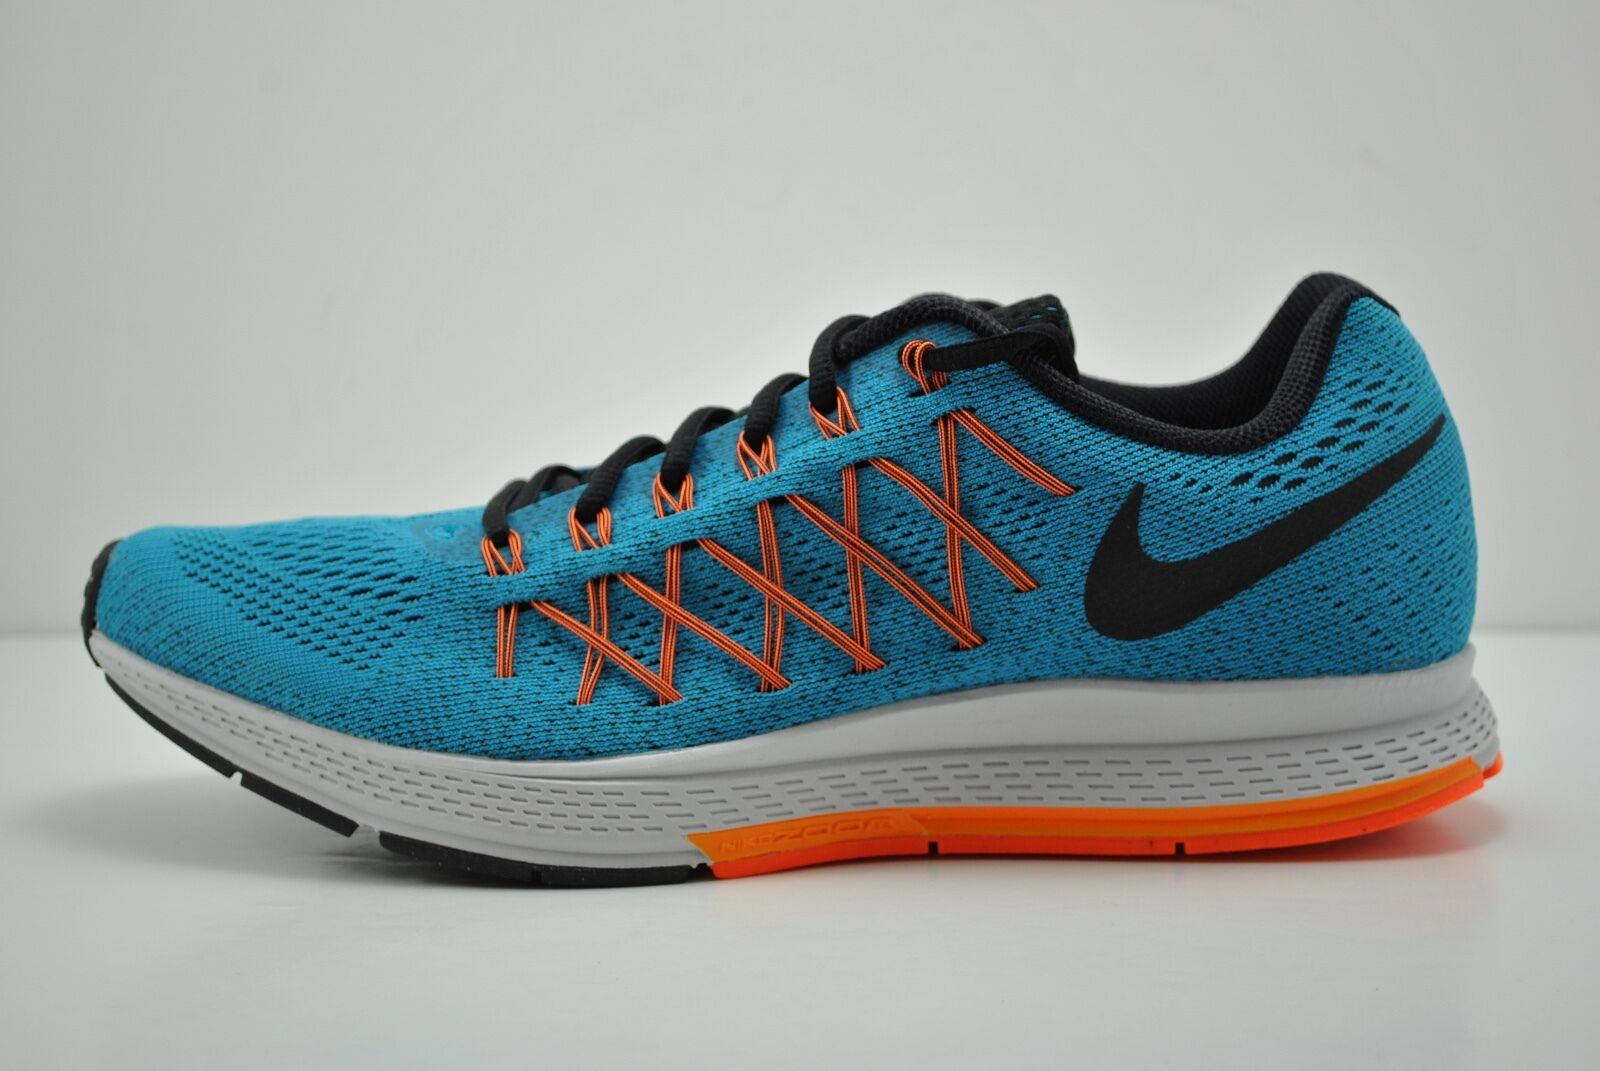 654473891f00 Mens Nike Air Zoom Pegasus 32 Running Shoes Size 11 Blue Black White 749340  400 lovely